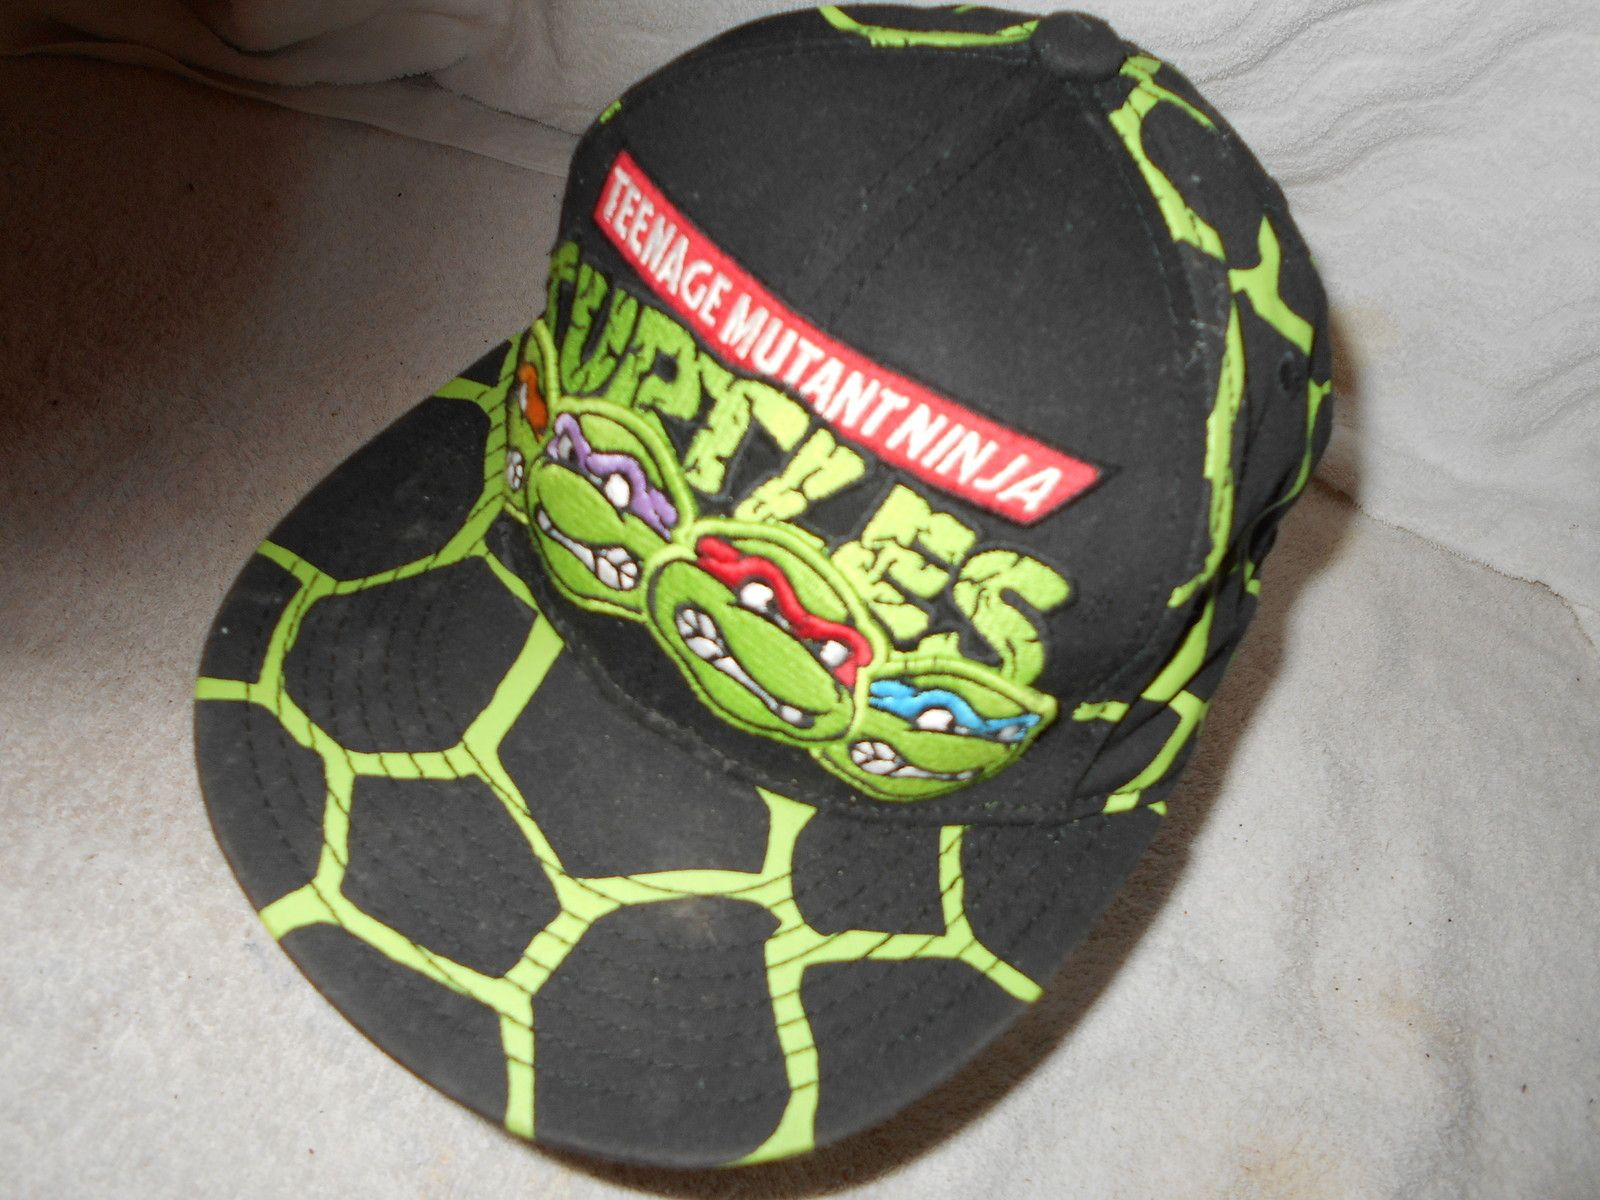 a5a6068133c teenage Mutant Ninja Turtles Vintage Snapback Hat cap Nickelodeon Flat Bill